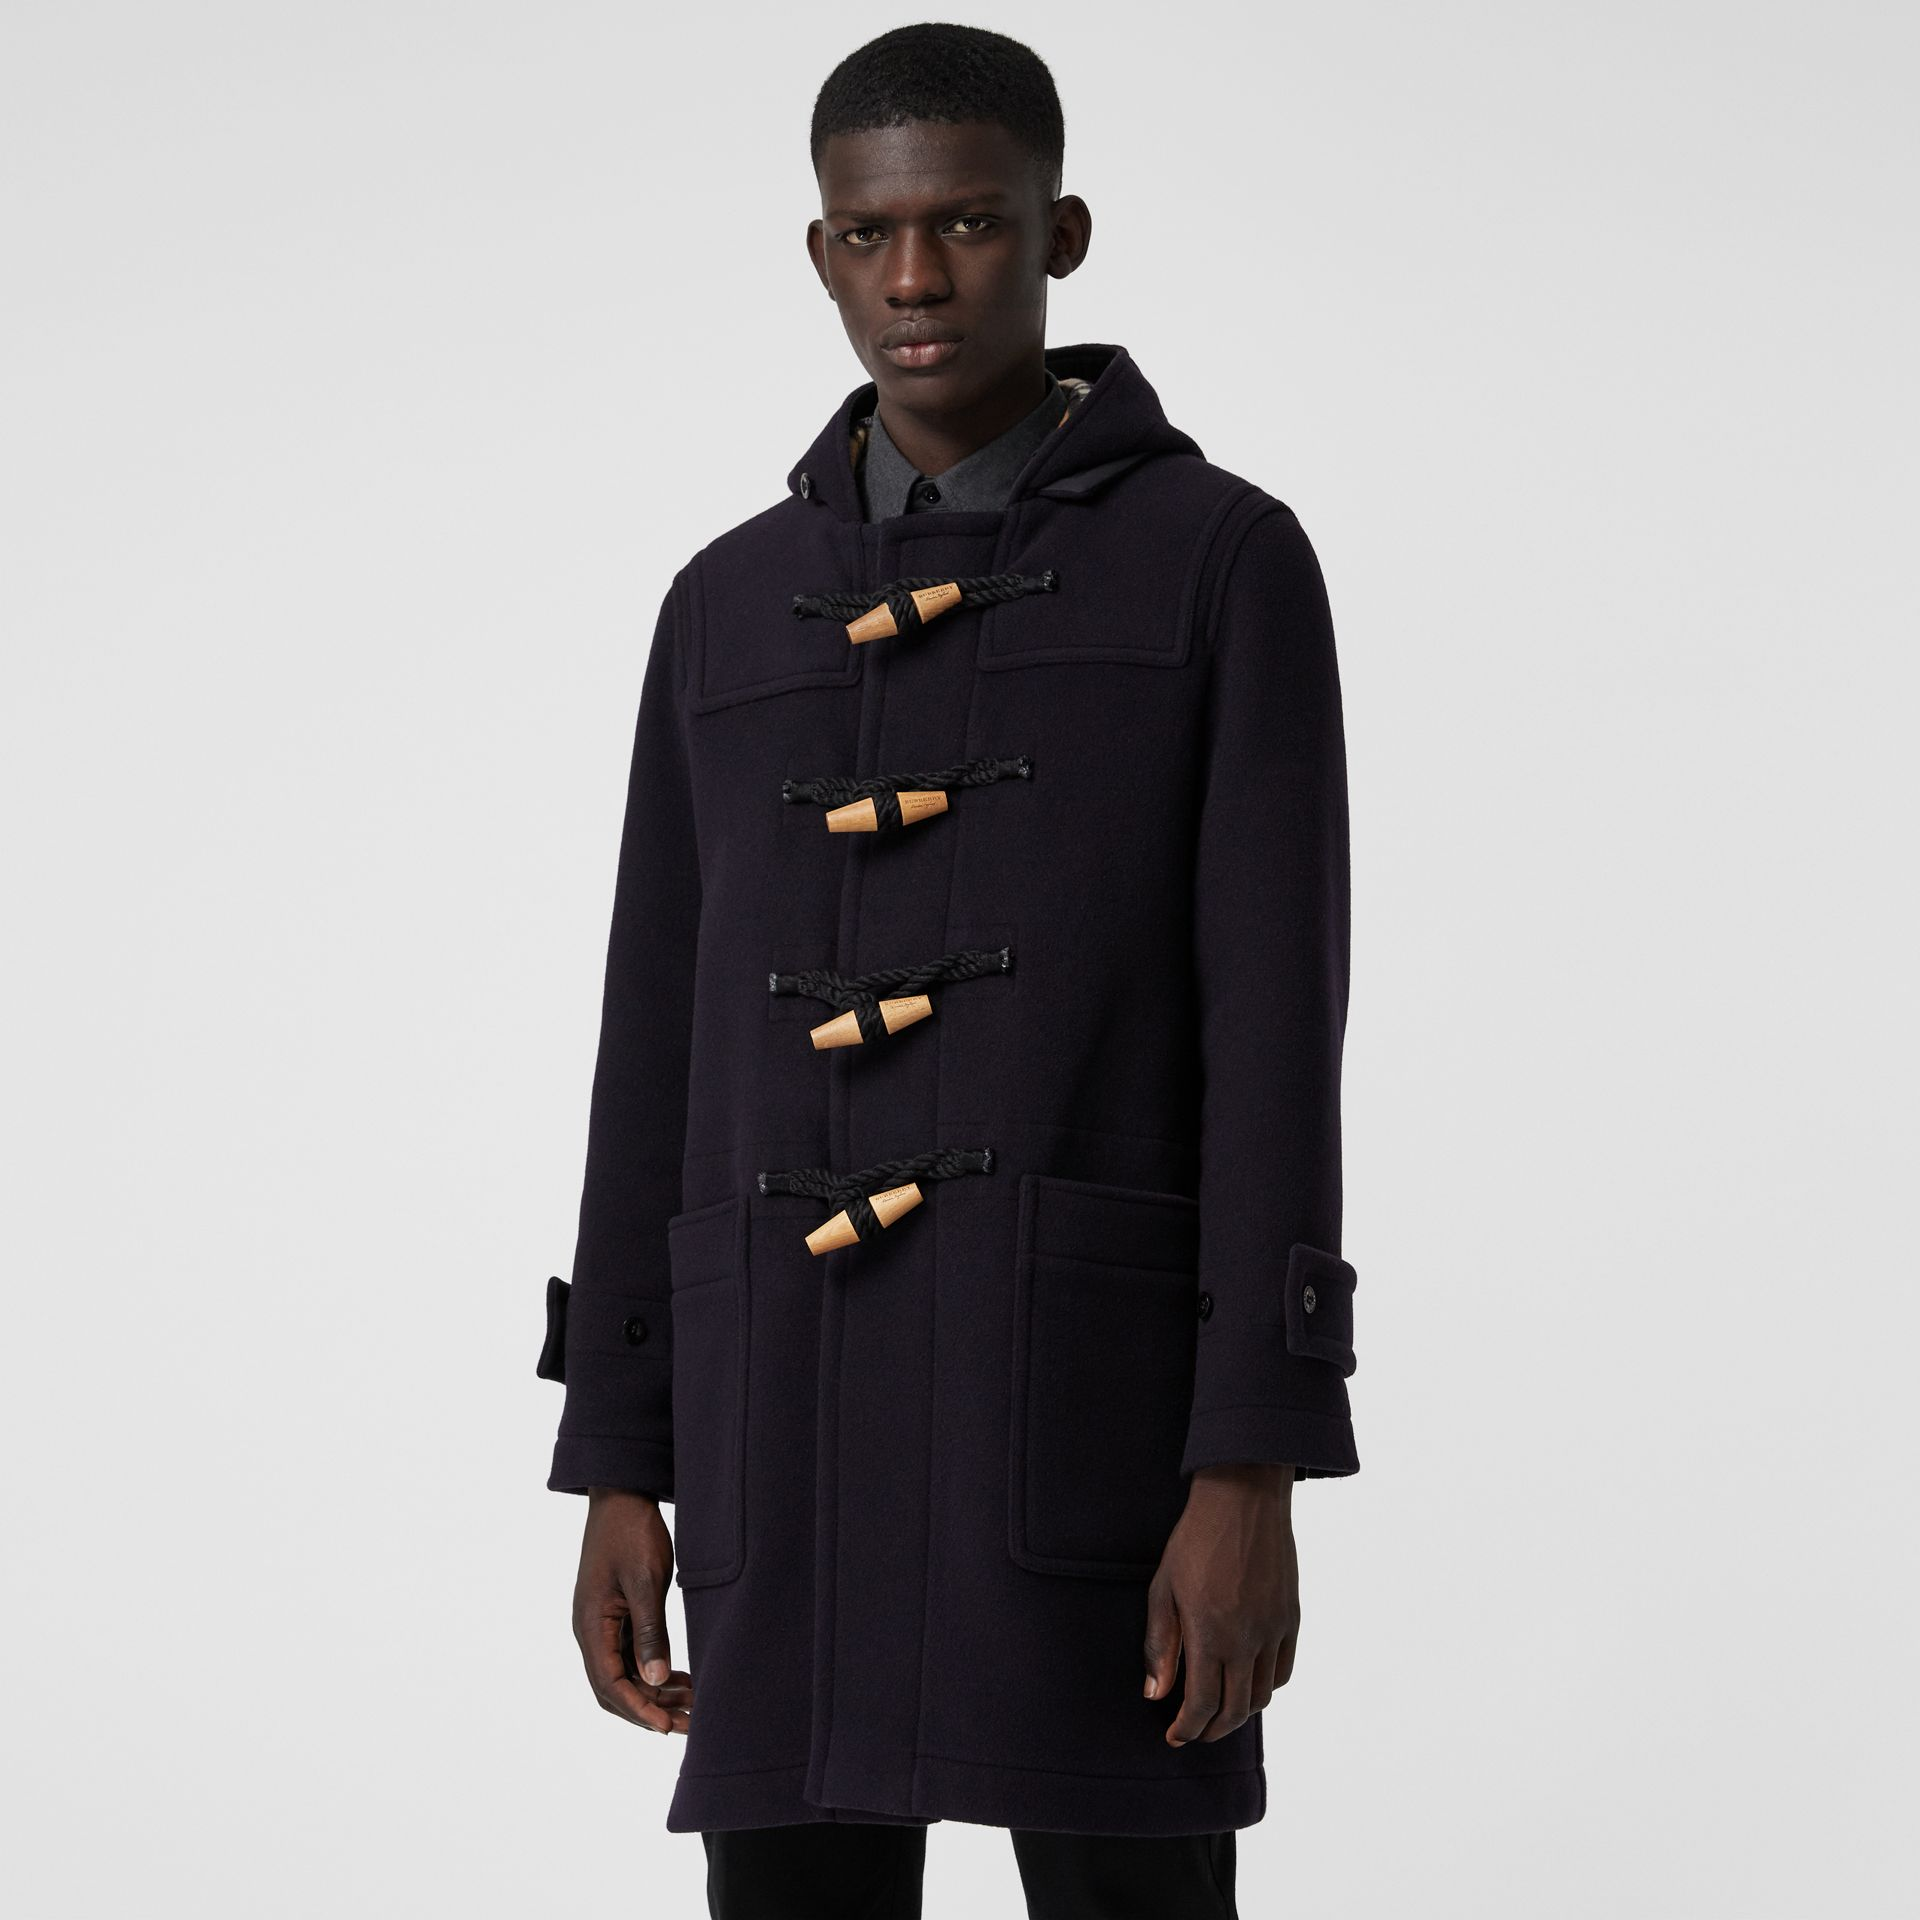 Vintage Check Detail Wool Blend Hooded Duffle Coat in Navy - Men | Burberry United Kingdom - gallery image 5